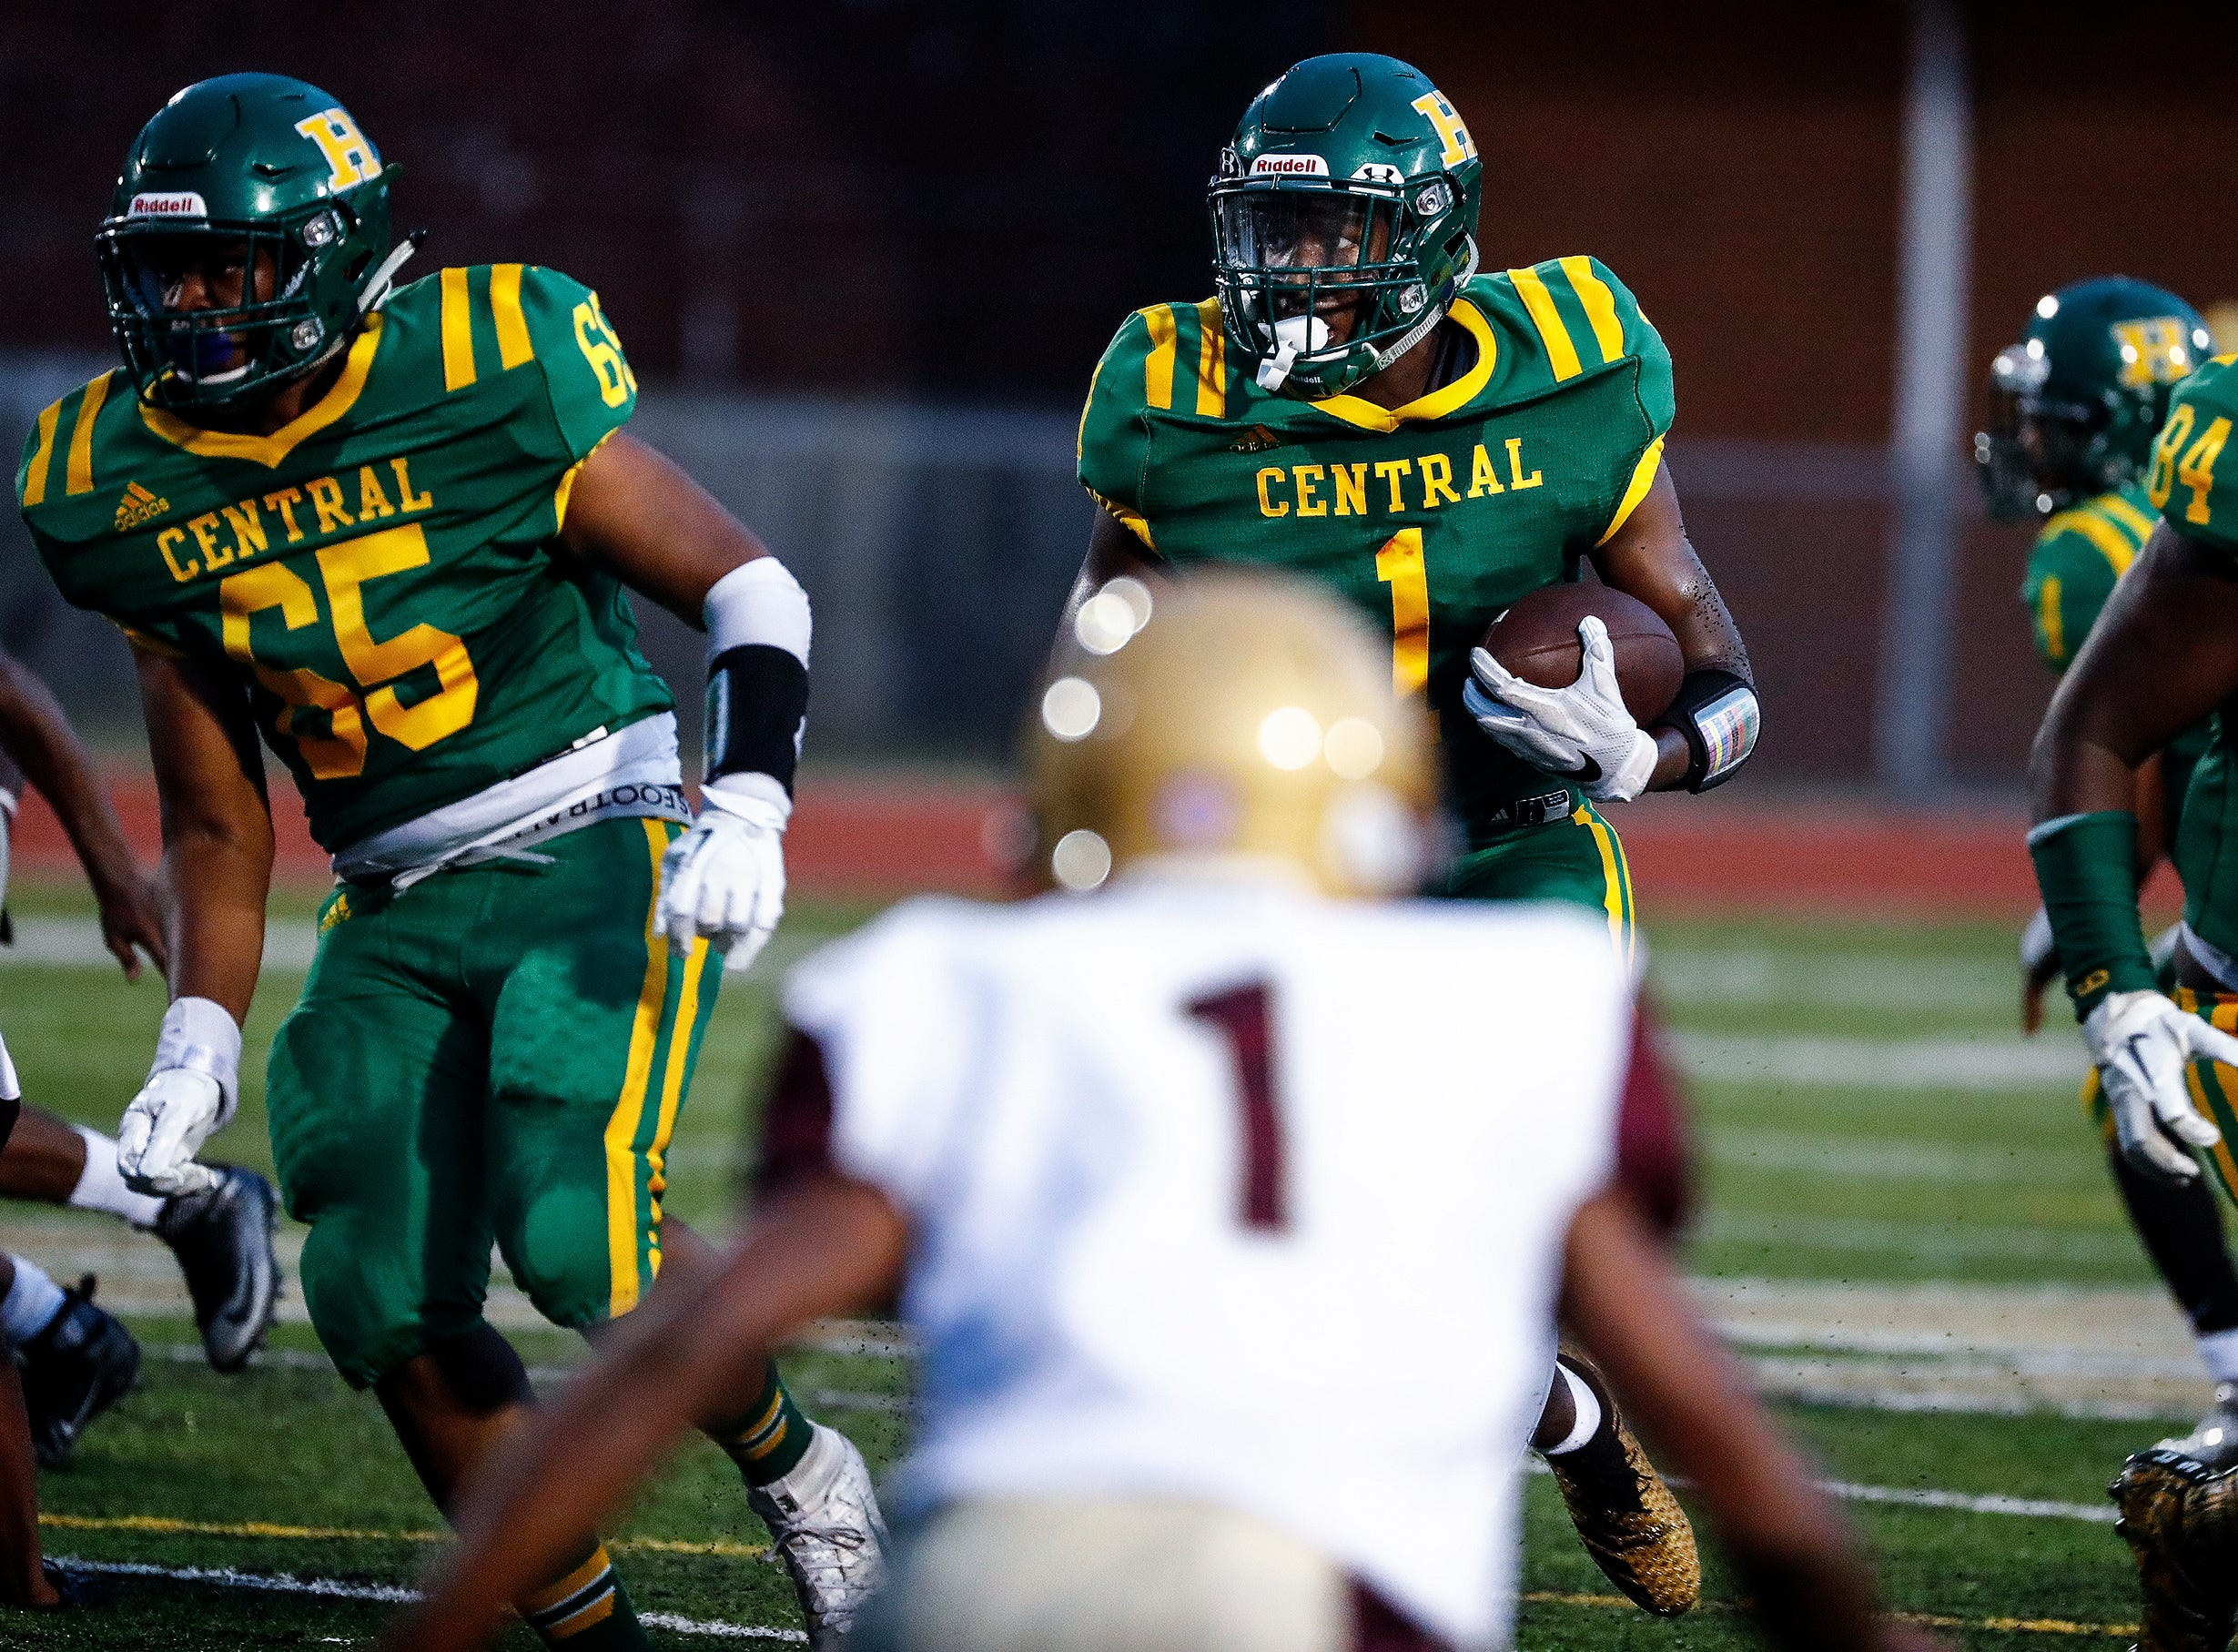 Central running back Dylan Ingram (middle) finds positive yards against the Melrose defense during action of the season opener on Friday, Aug. 17, 2018, at Crump Stadium.